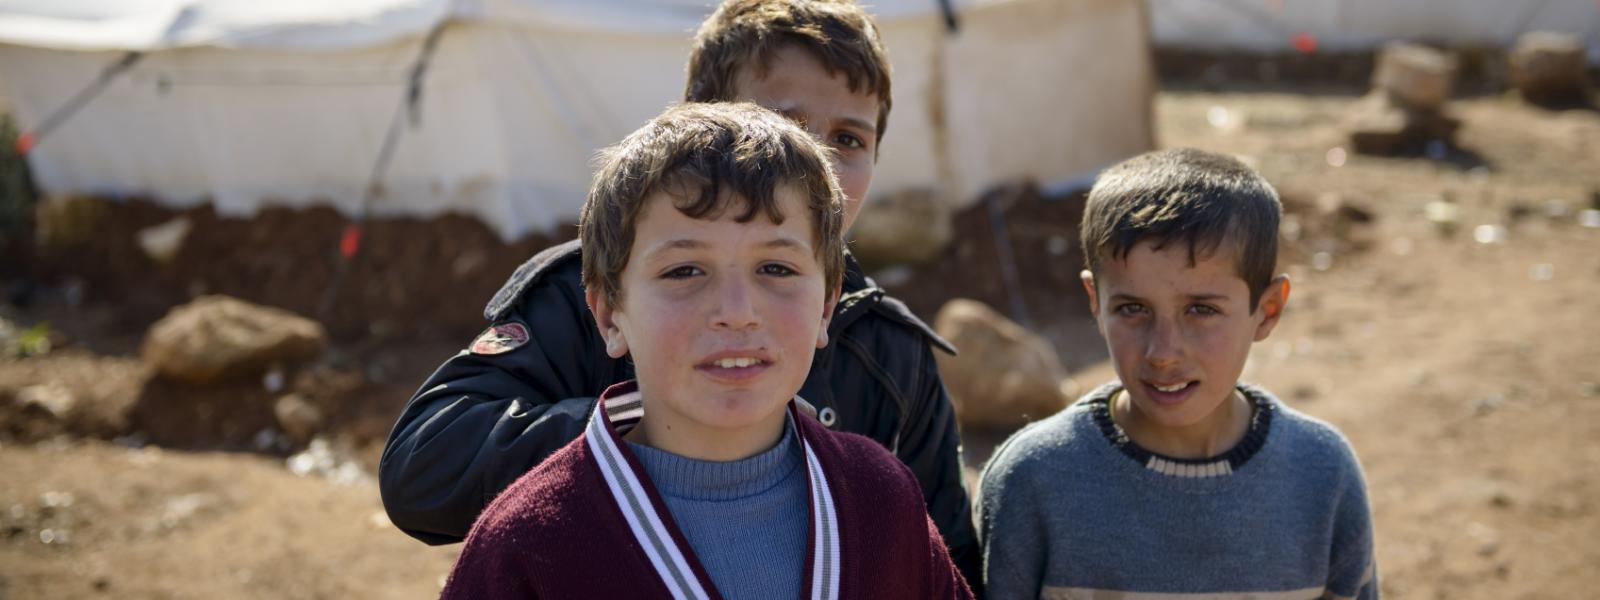 Qatma, Syria: Three boys stand in front of tents at a camp for displaced persons in northern Syria